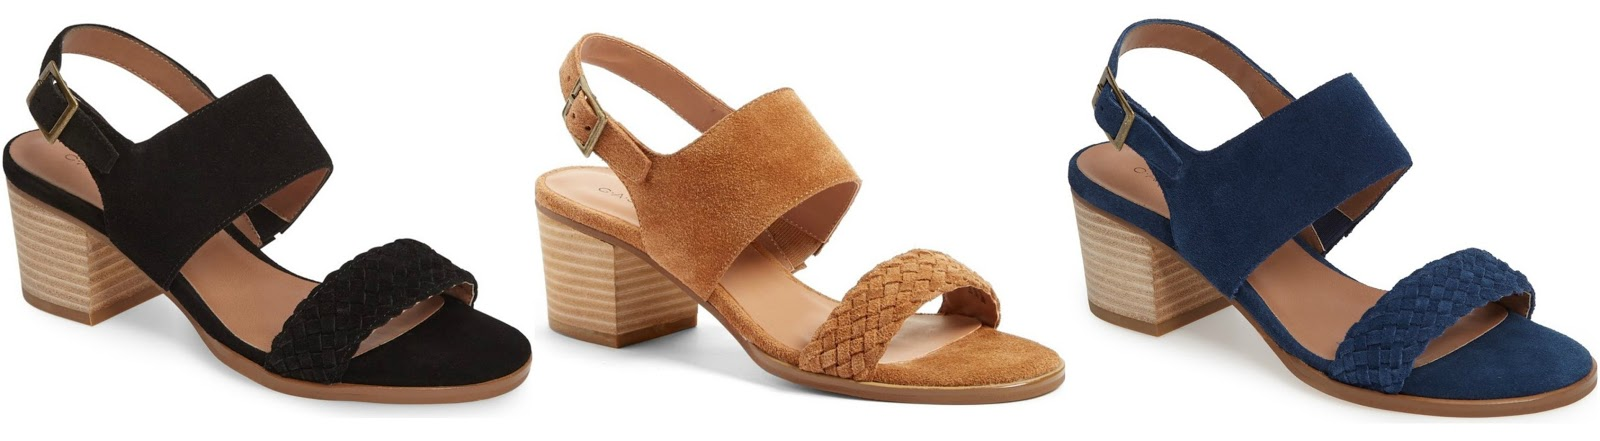 7550f6a007f Wear It For Less  Nordstrom  Vince Camuto Evel Sandals only  70 (reg ...